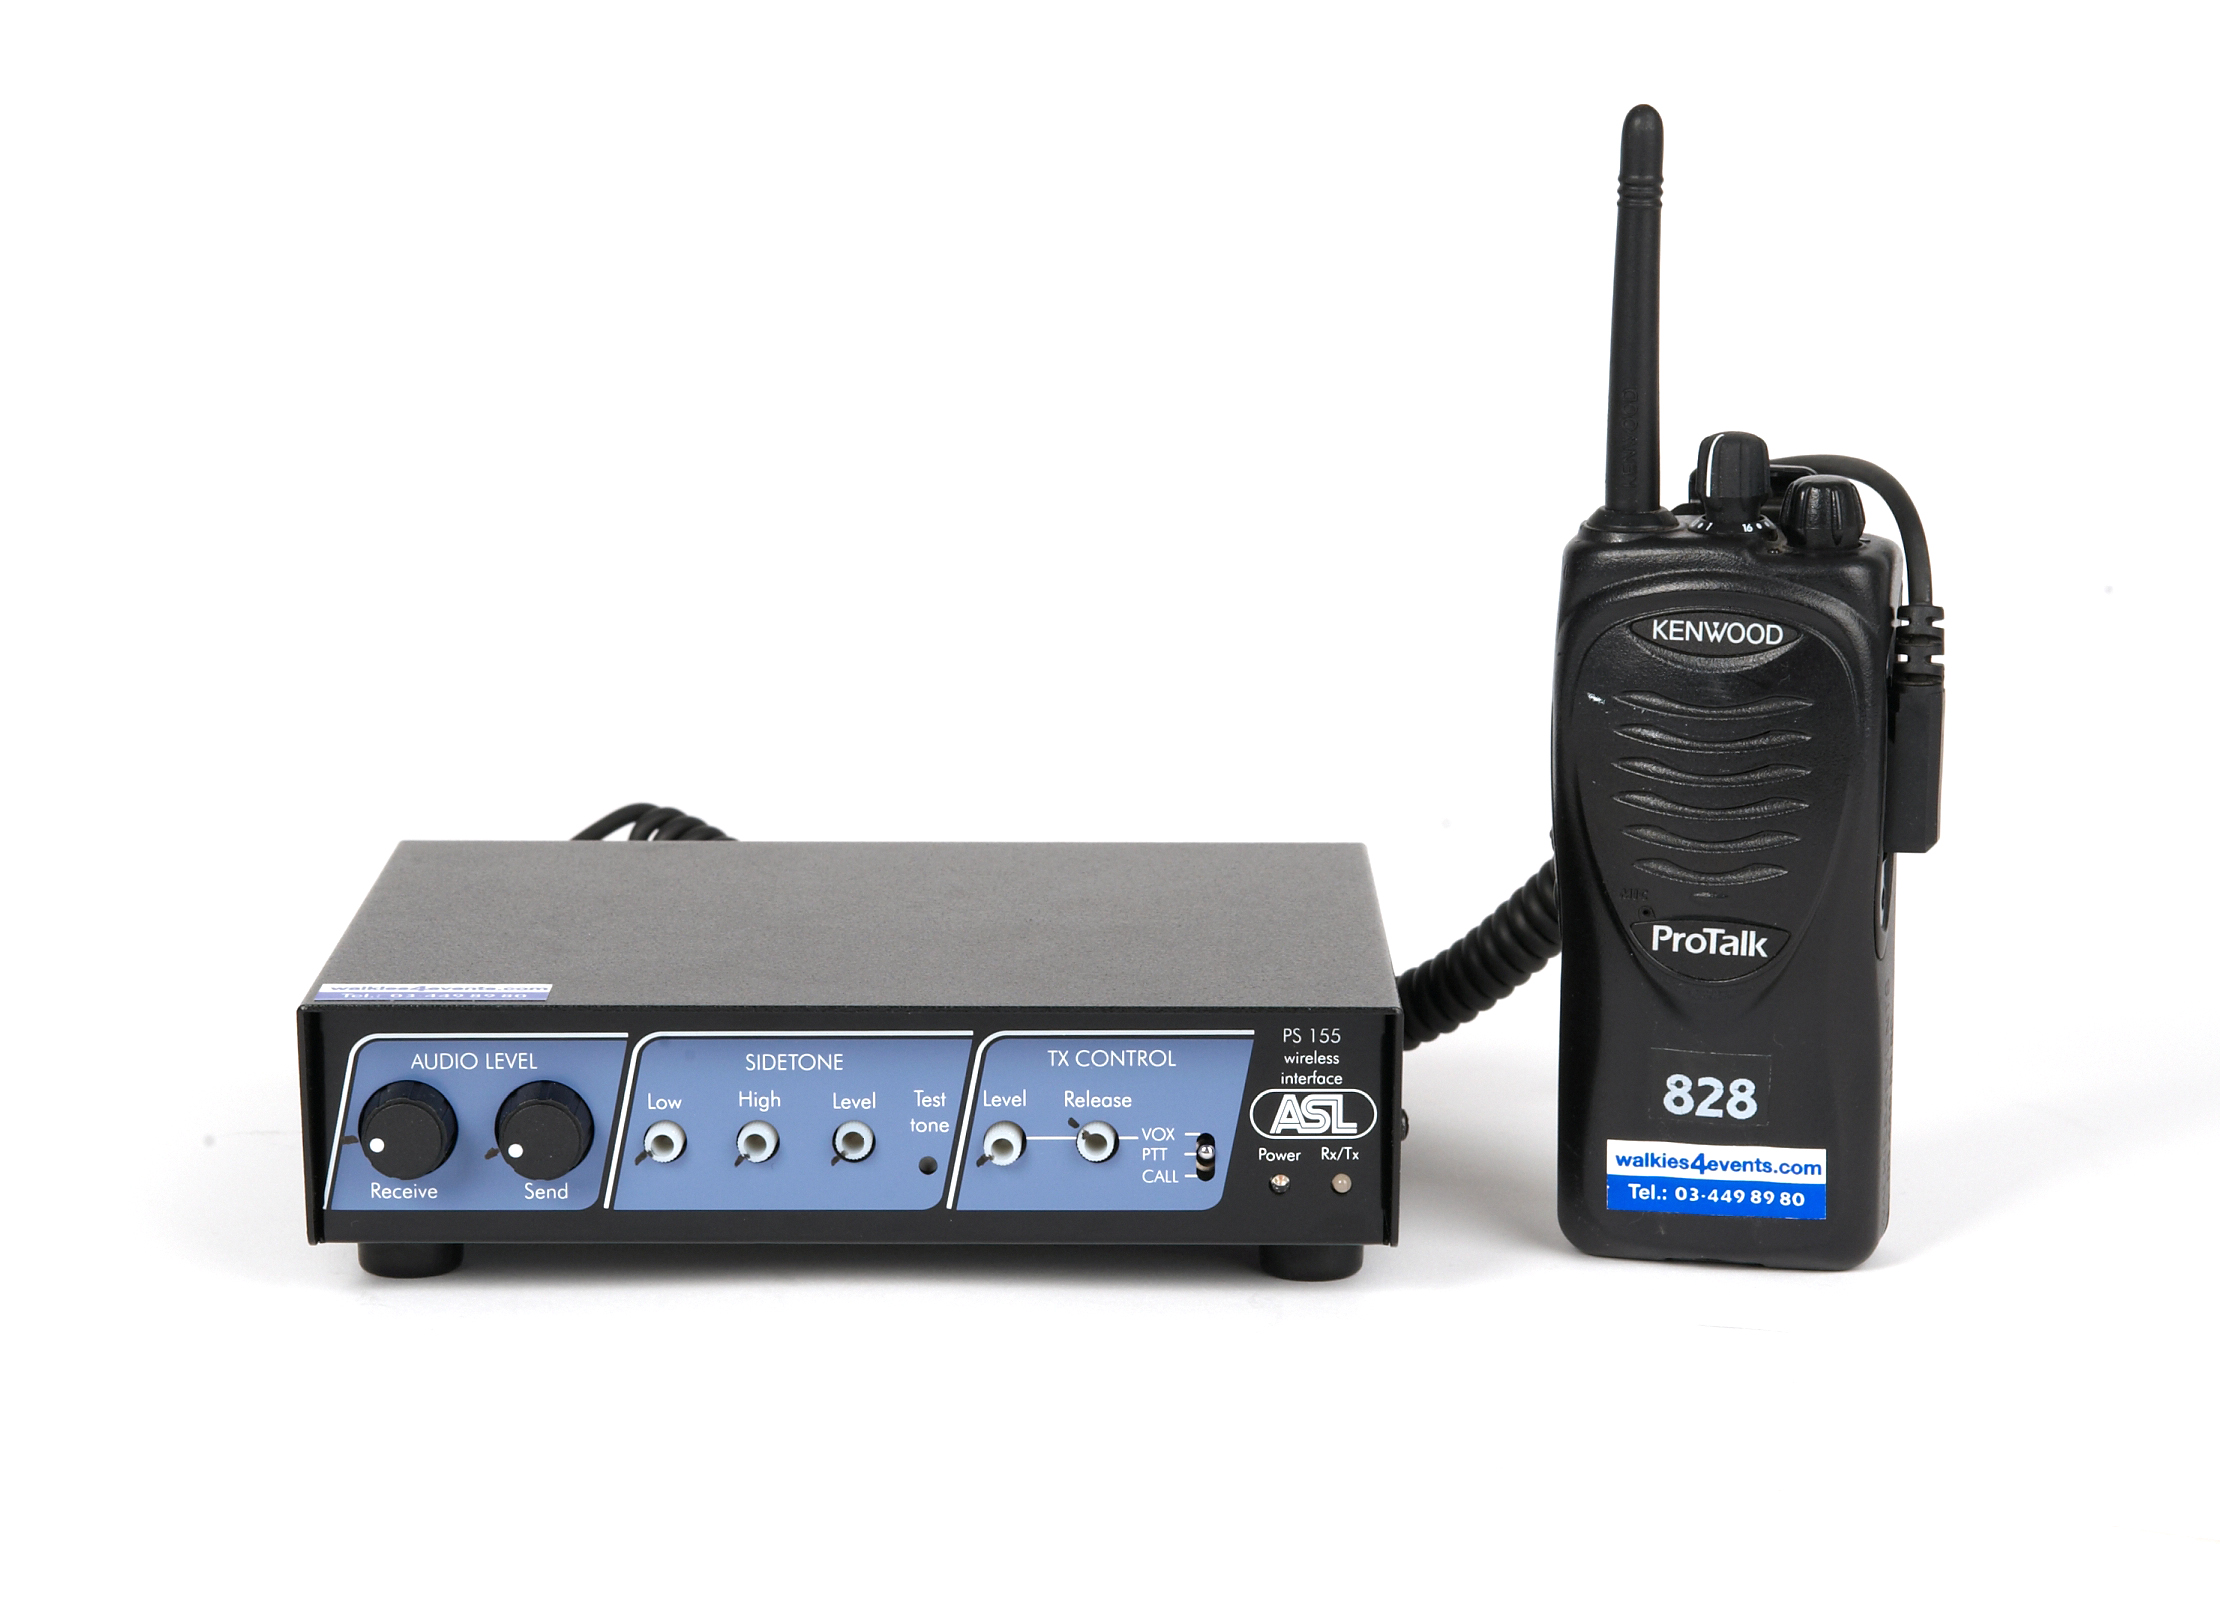 Walkies4Events - ASL PS 155 bekabelde intercom voor interface met walkietalkies van het merk Kenwood